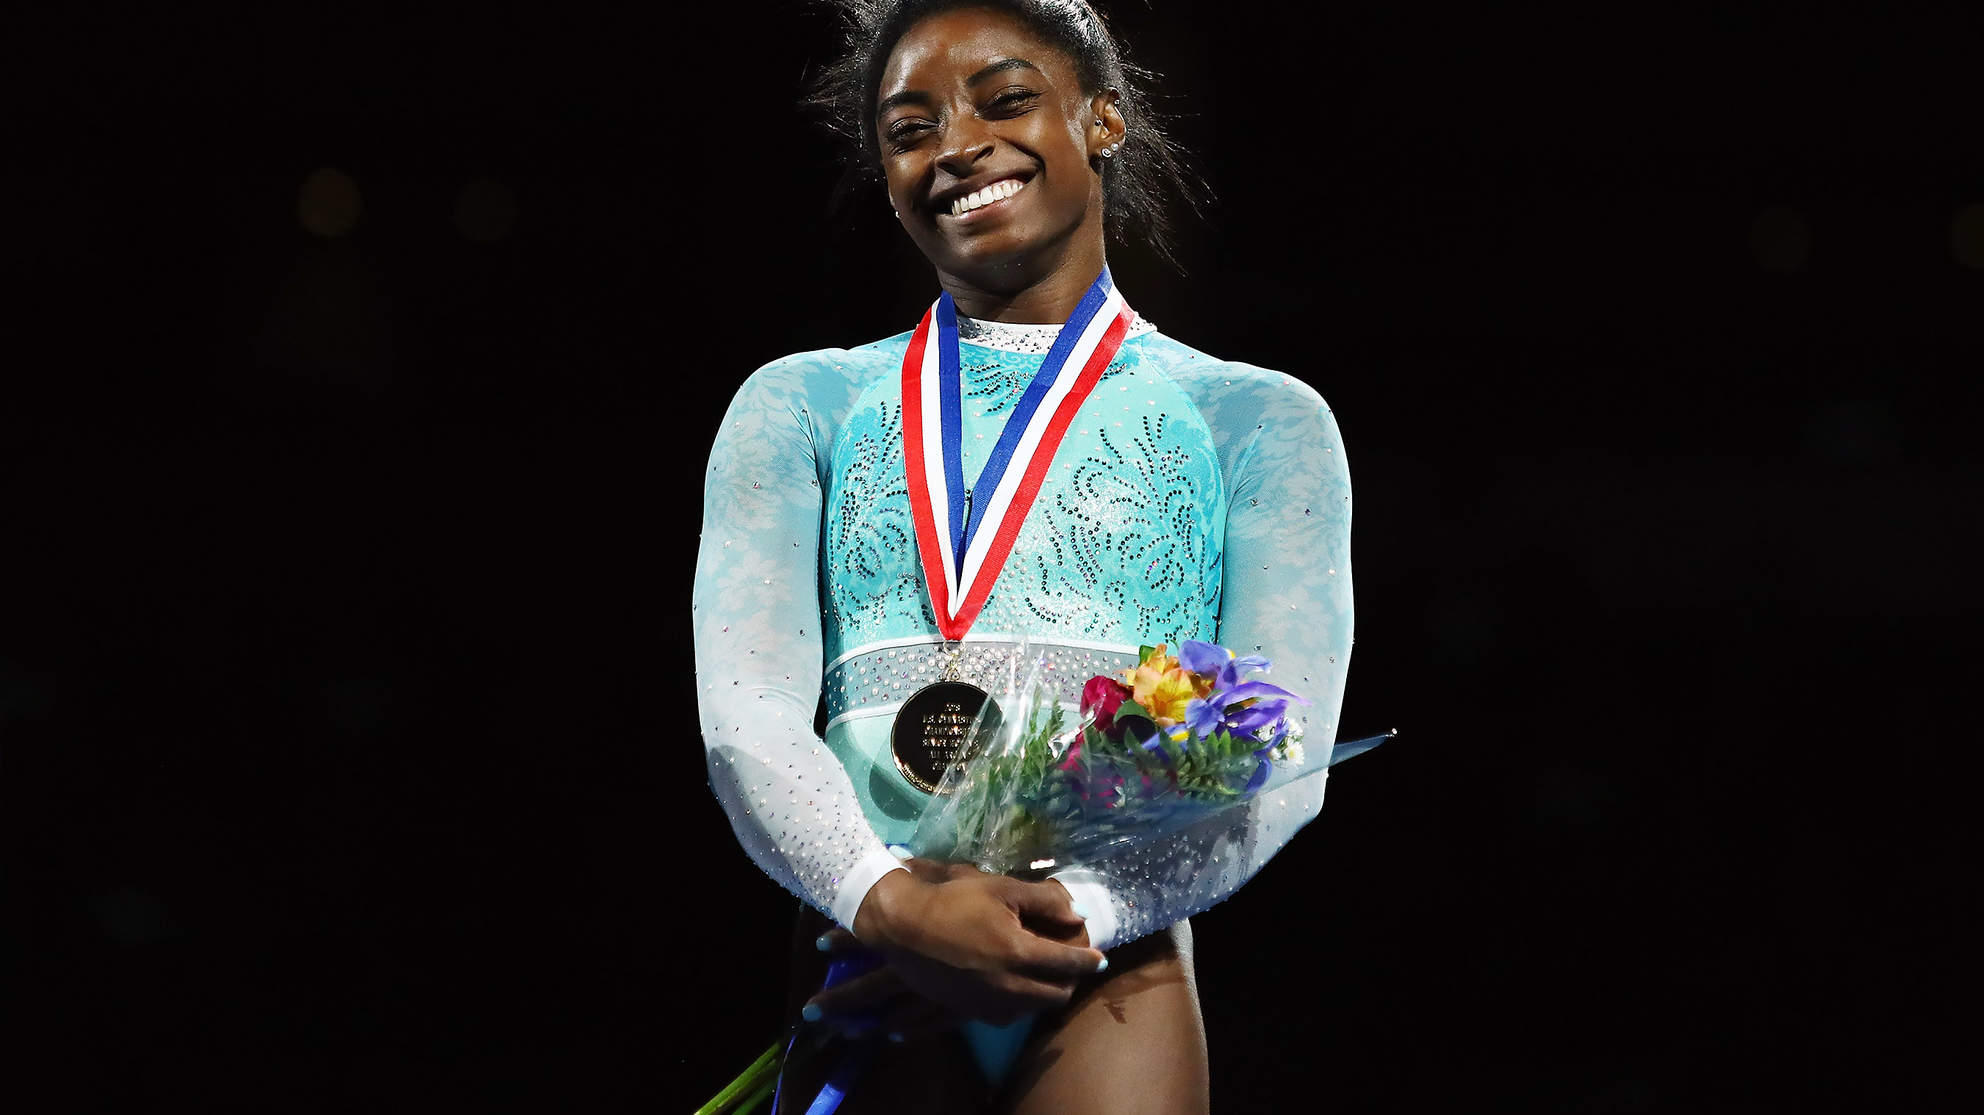 Simone Biles Broke a Major Gymnastics Record—While Wearing an Outfit with a Hidden Meaning